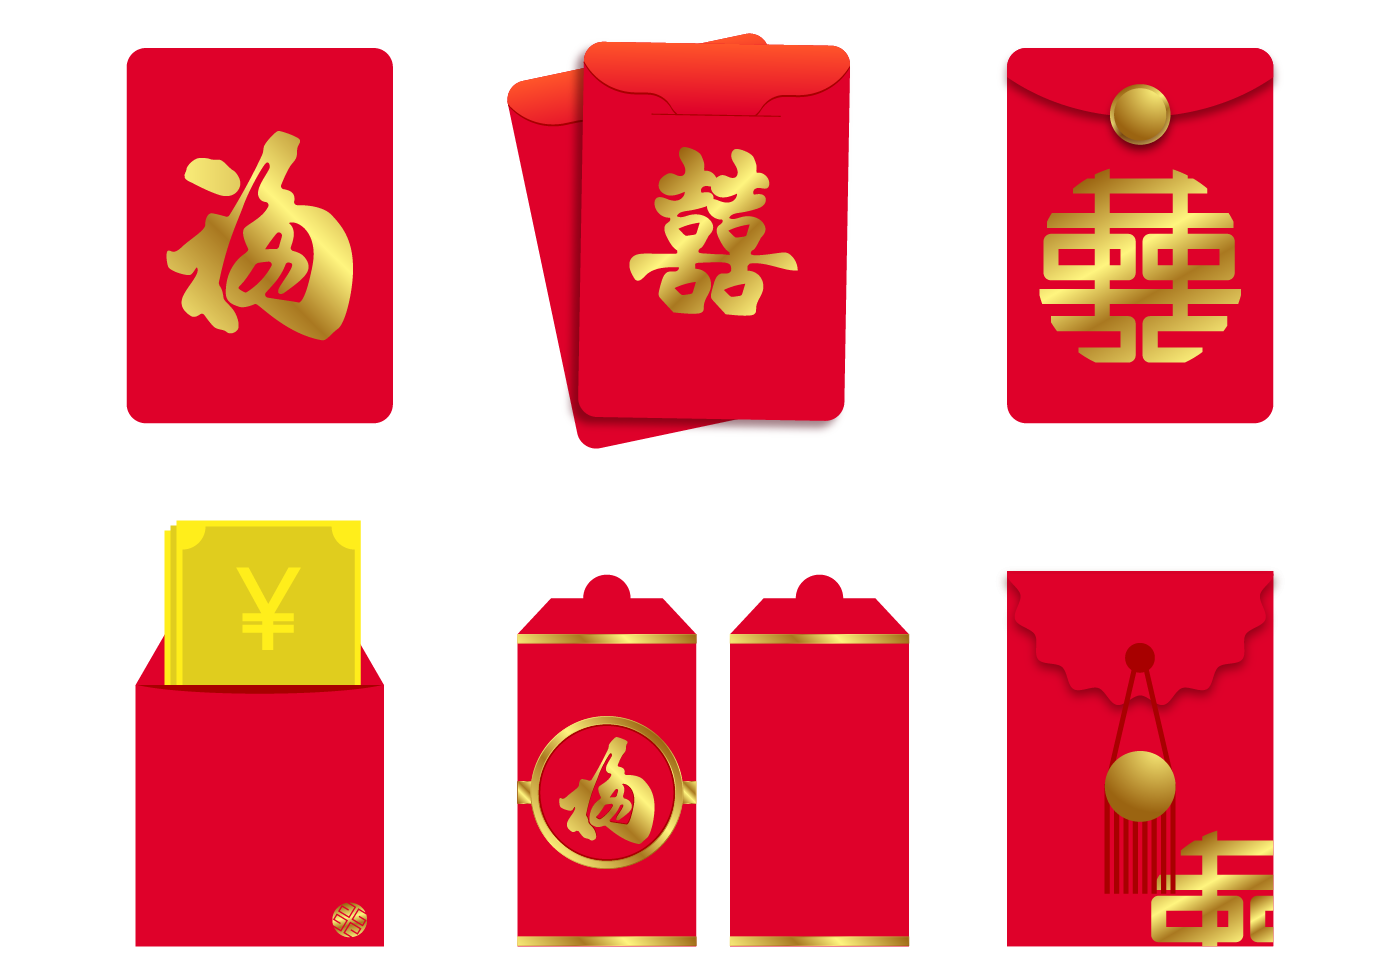 Free Red Packet Vector - Download Free Vectors, Clipart Graphics & Vector Art1400 x 980